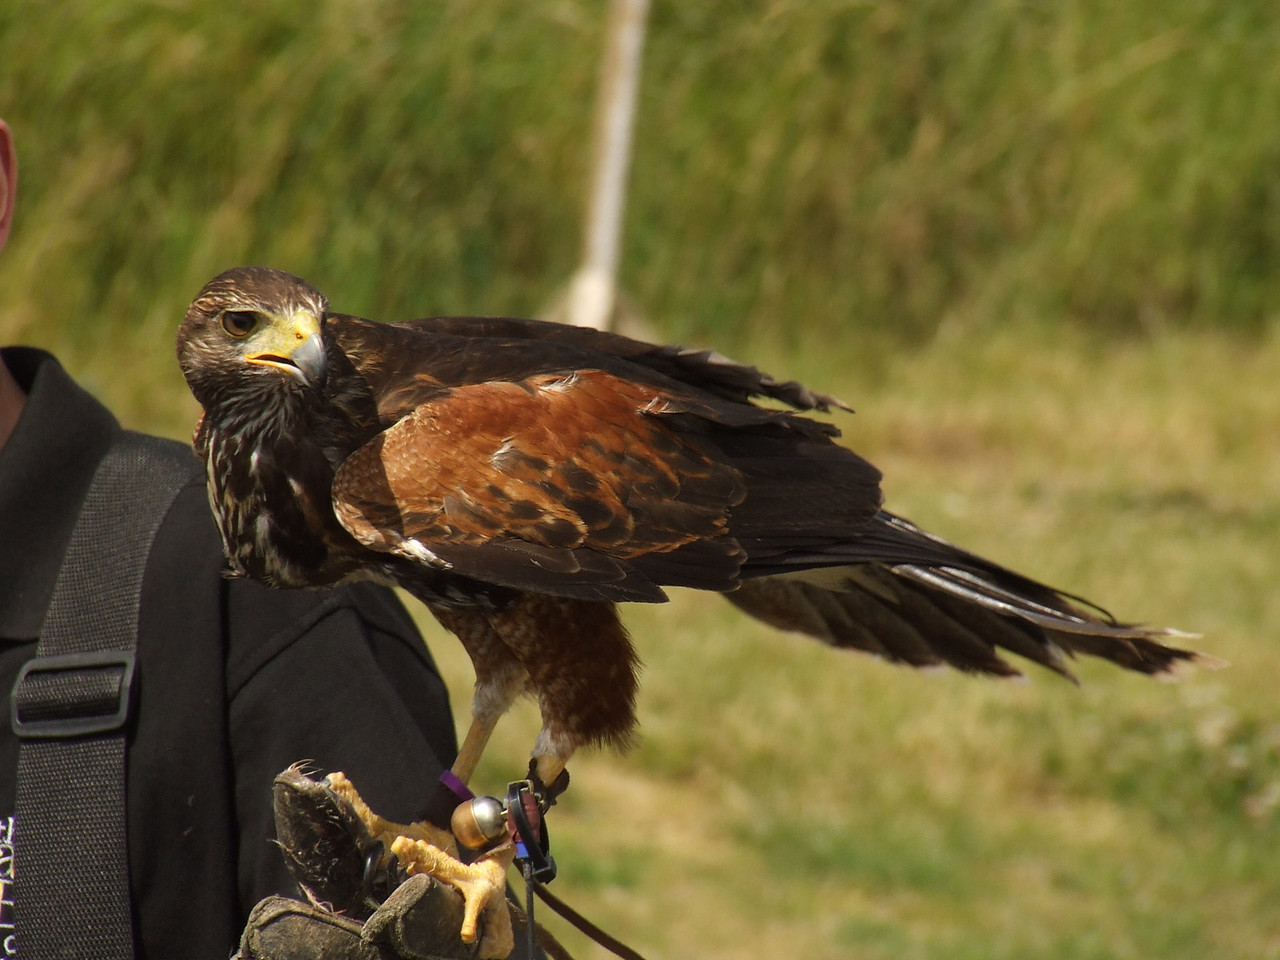 One of the Hawks during the bird display